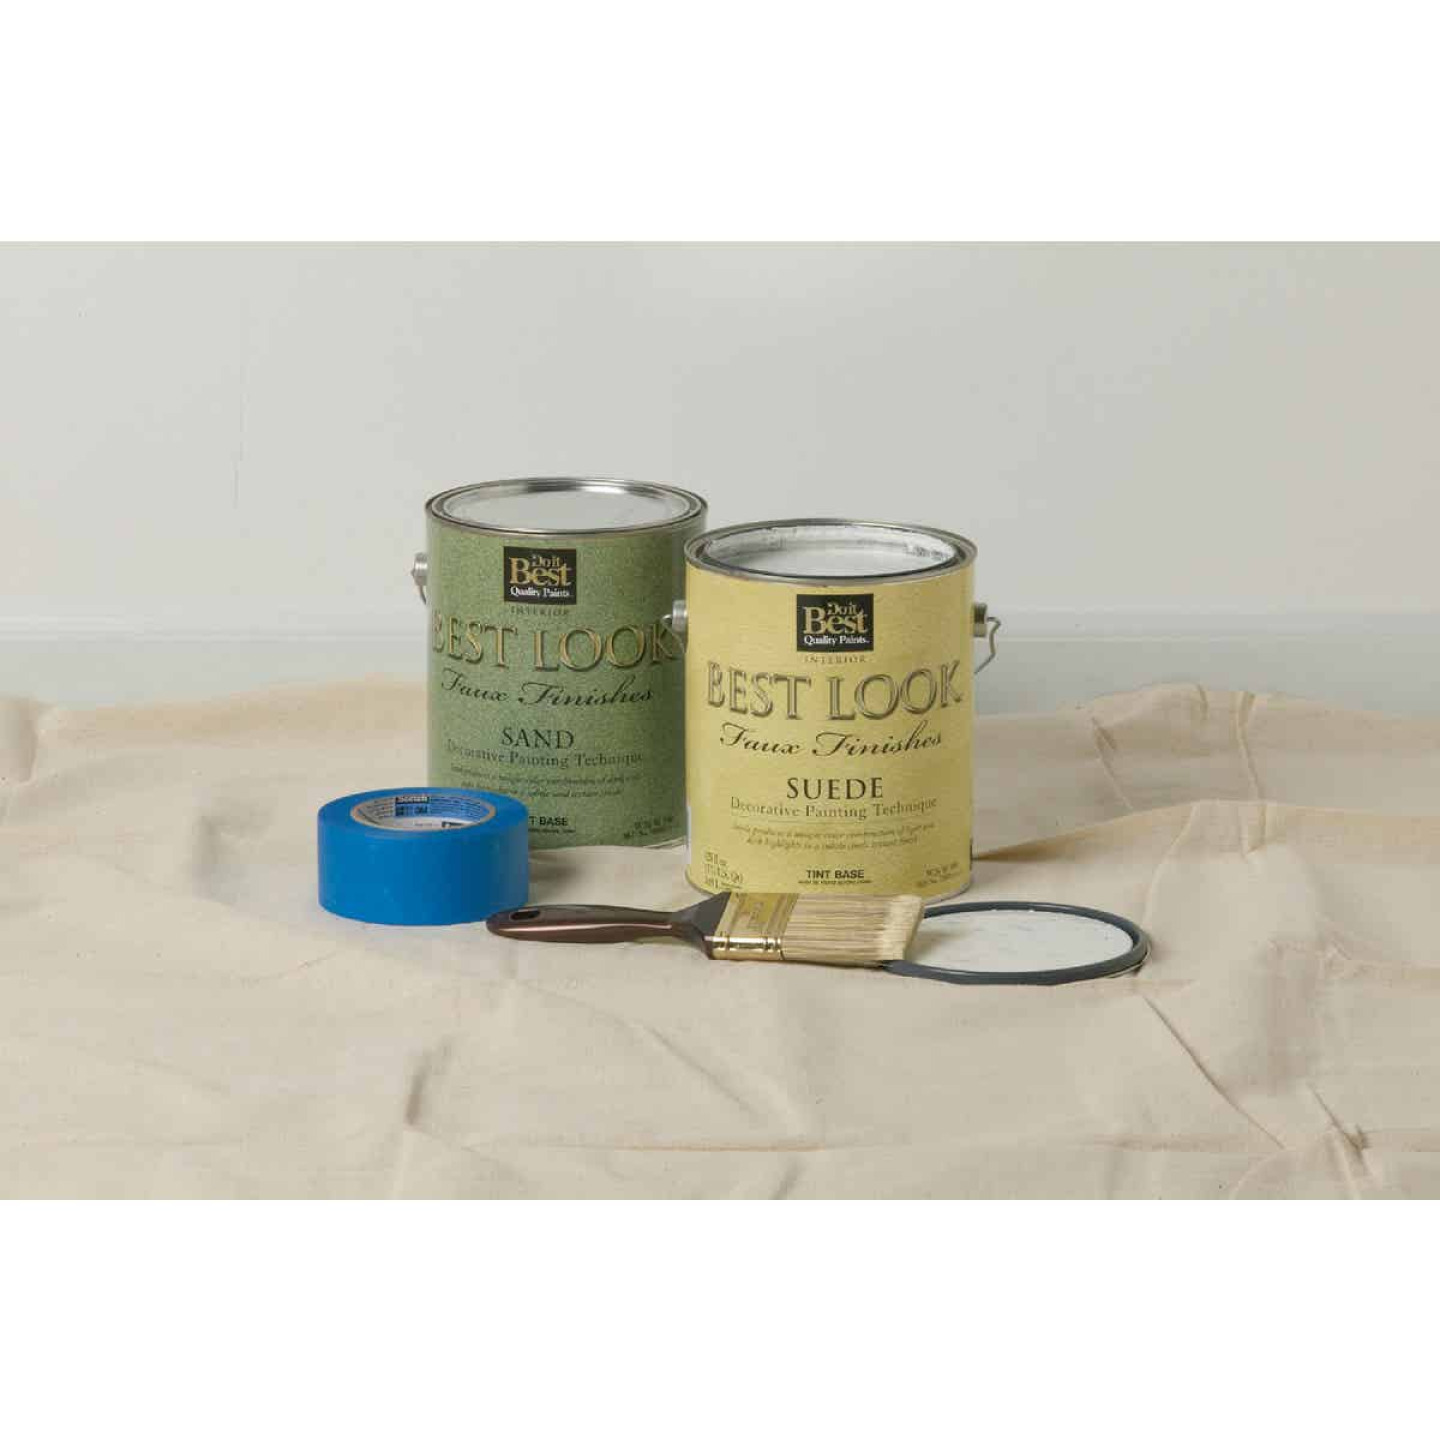 Wooster SILVER TIP 1-1/2 In. Flat Sash Varnish And Paint Brush Image 2